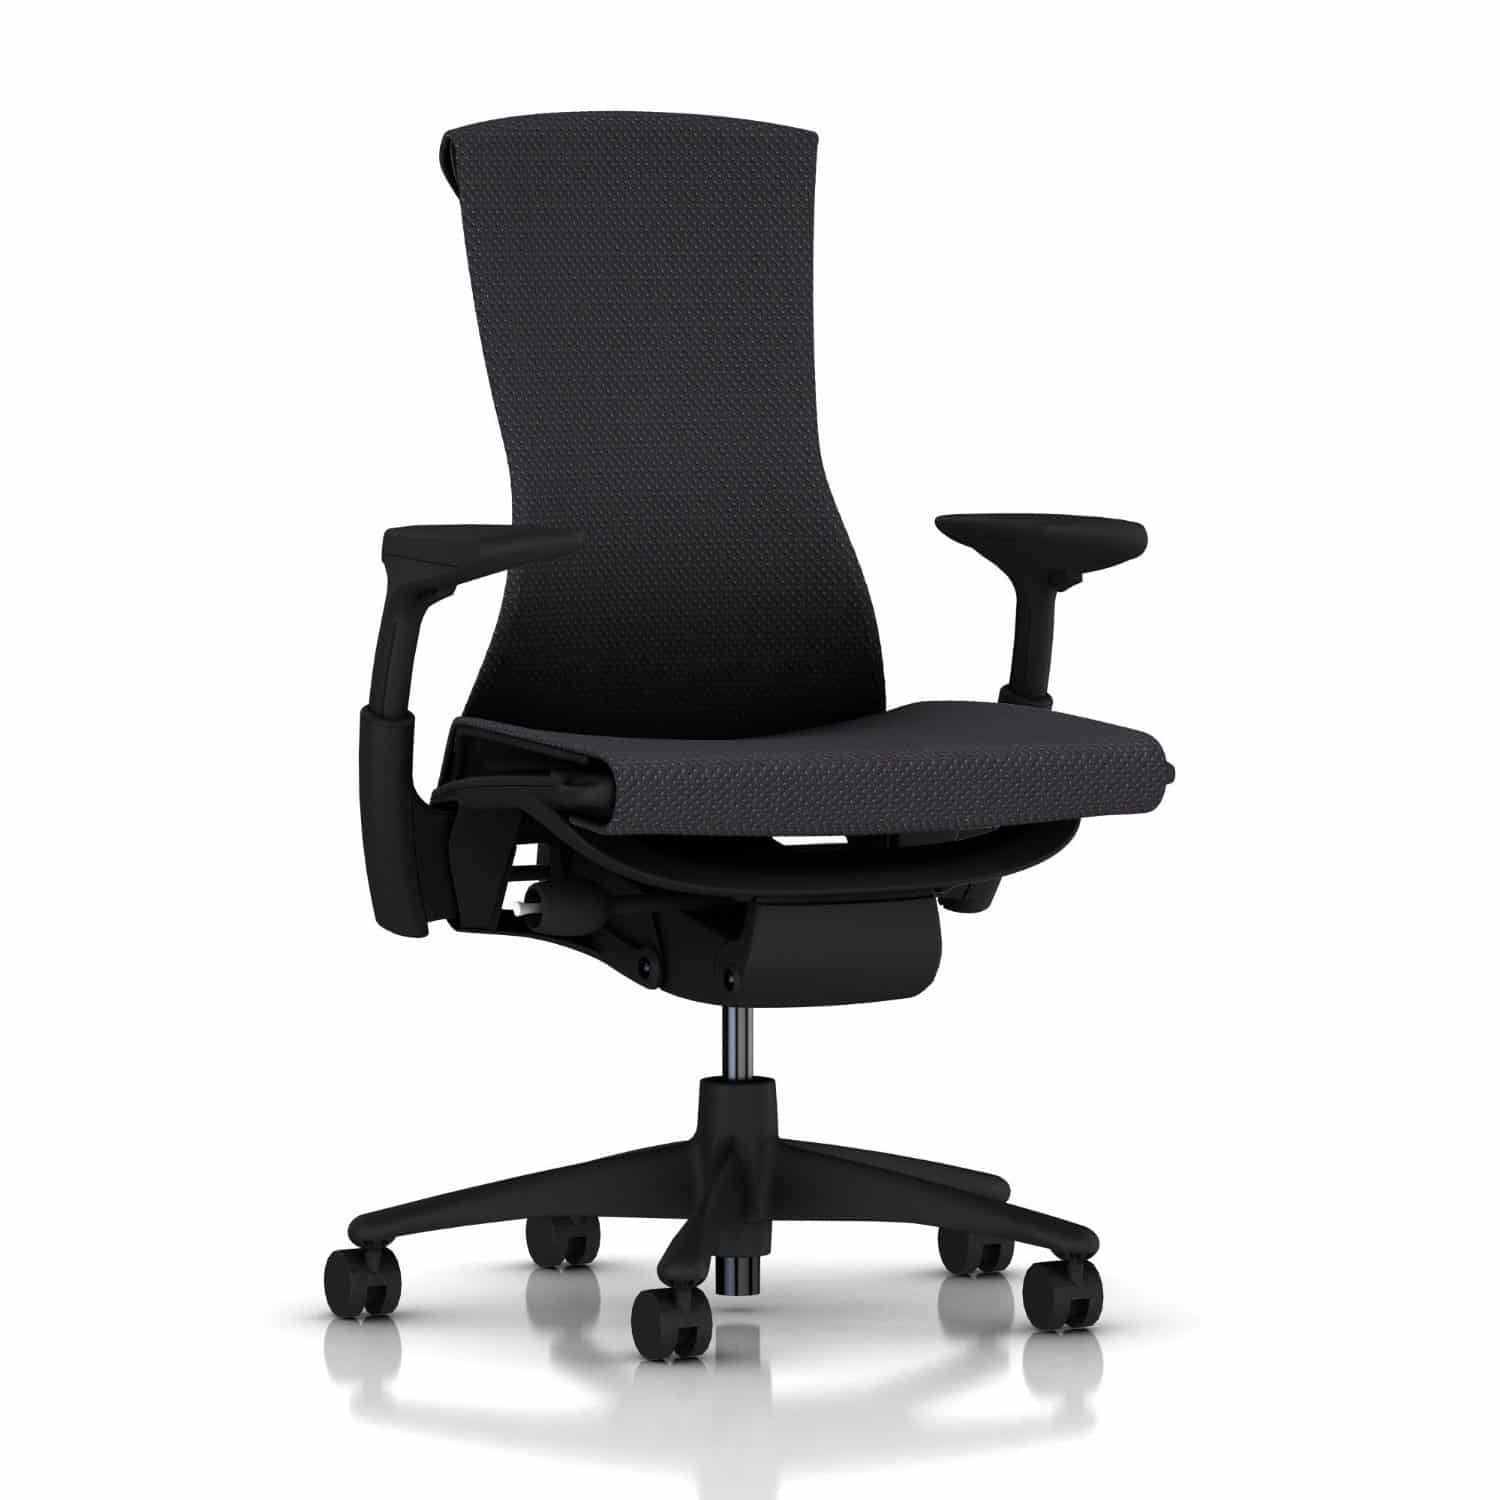 Herman Miller Embody Chair - best gaming chair